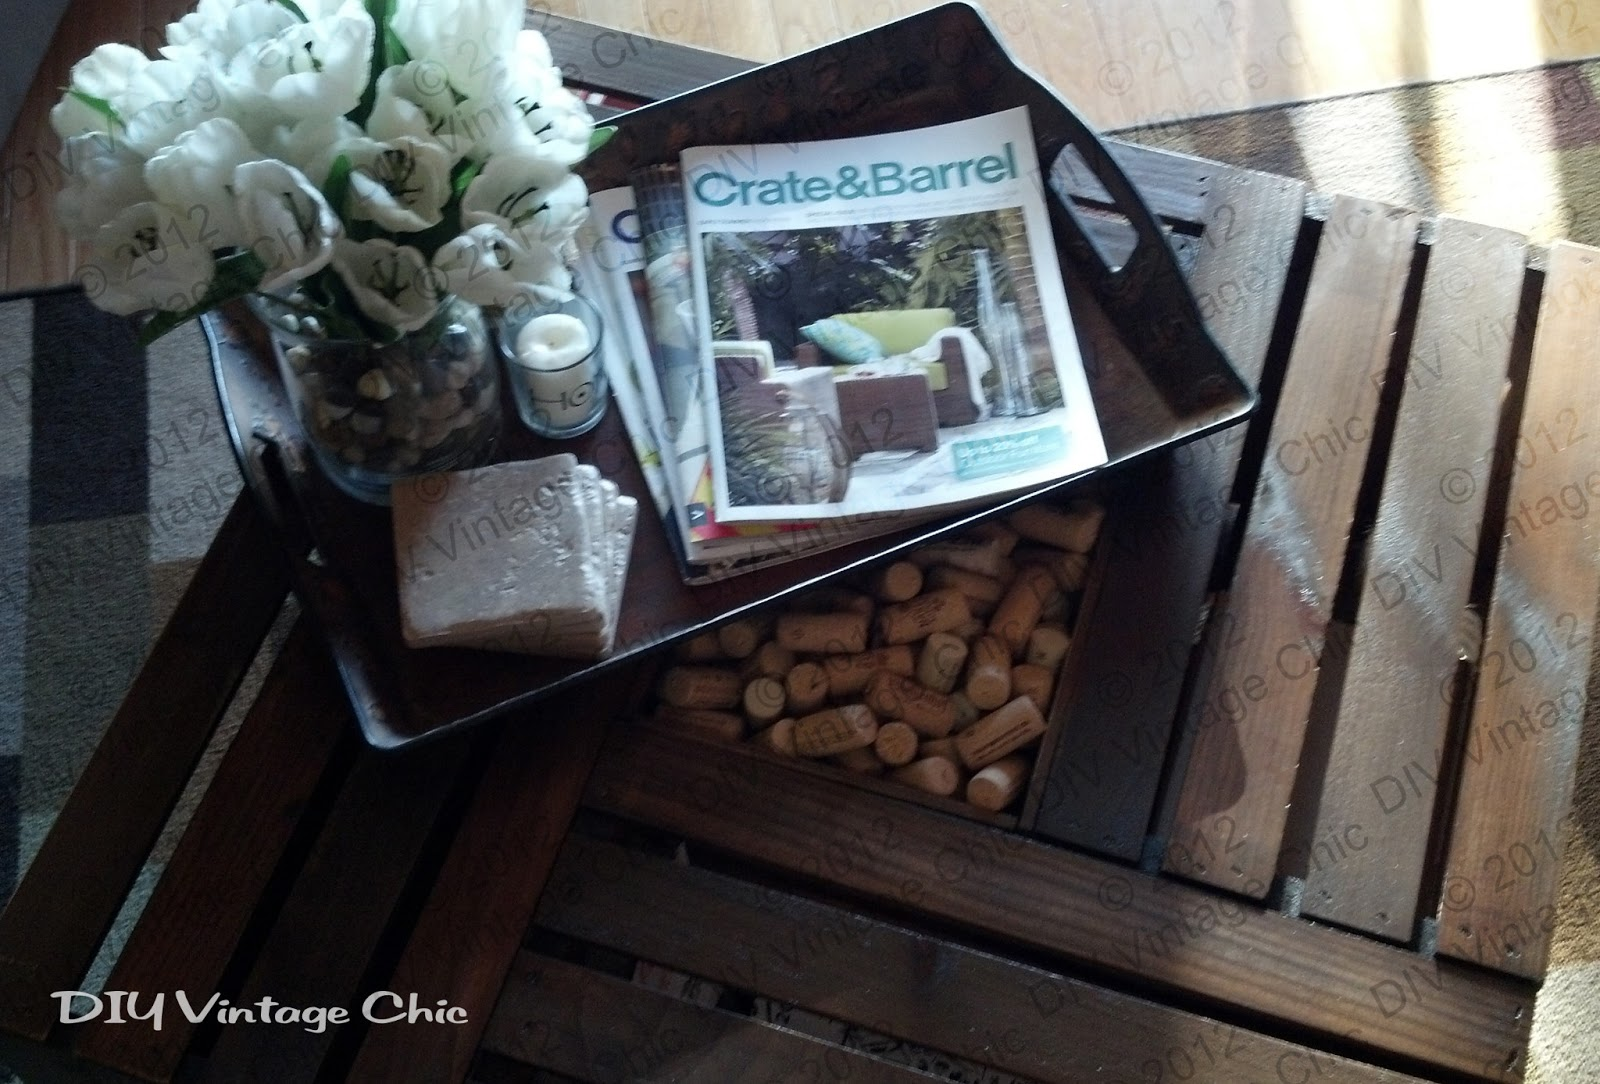 Diy vintage chic vintage wine crate coffee table a few of my favorite inspirational magazines also included are my coasters also known as cheap tiles from lowes theyll geotapseo Choice Image